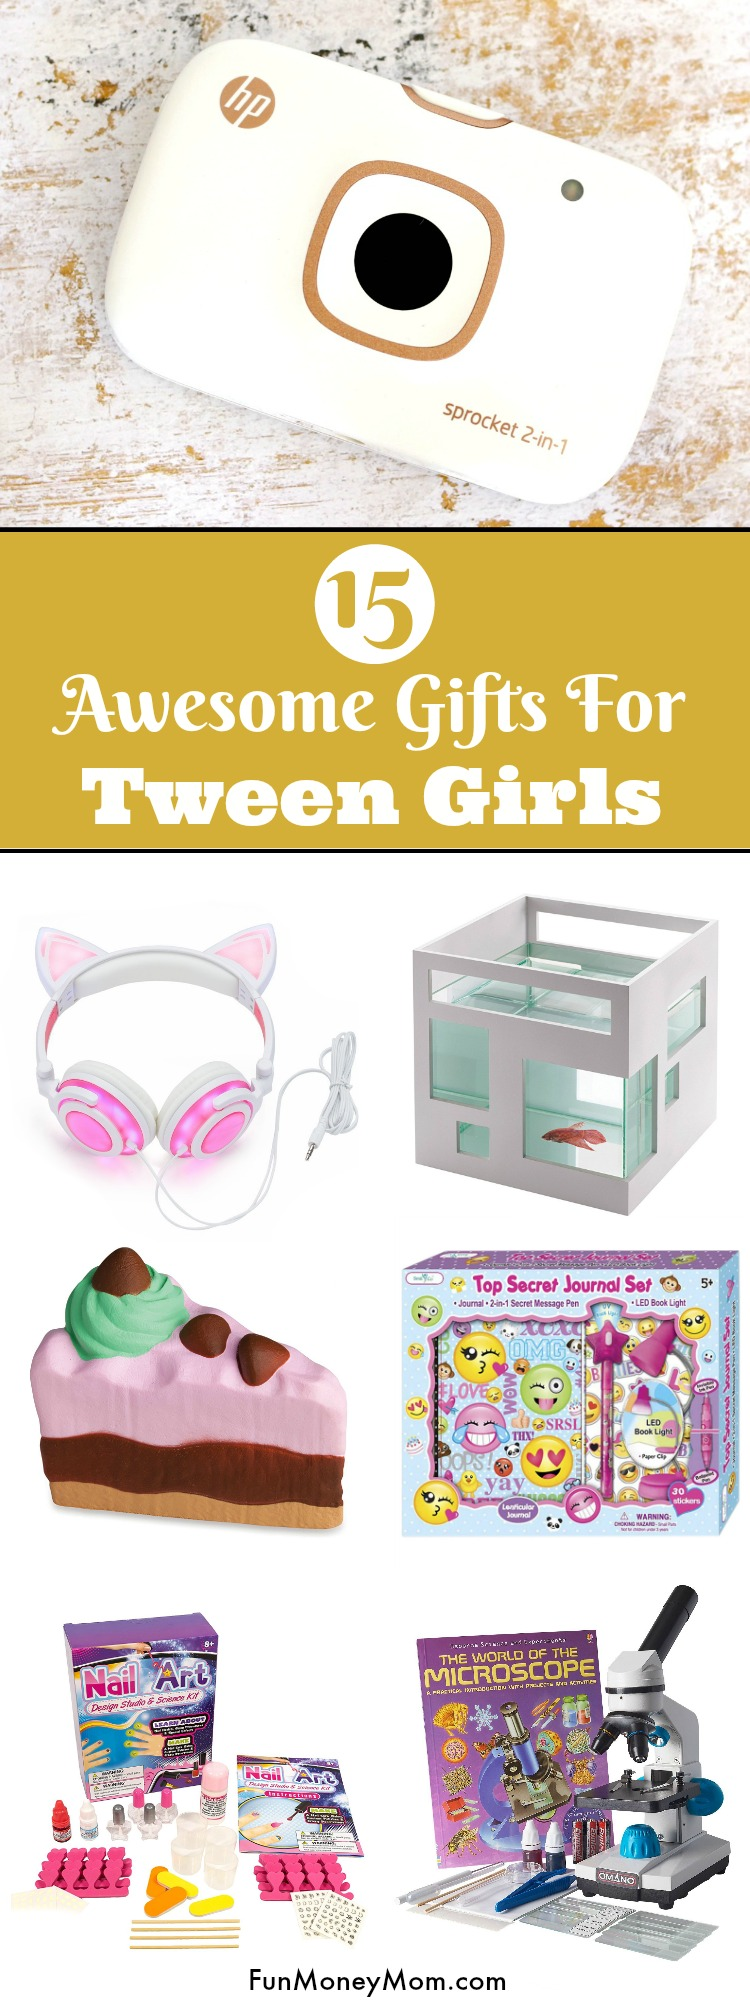 Christmas shopping for a tween? This fun gift guide features the perfect gifts for tween girls.